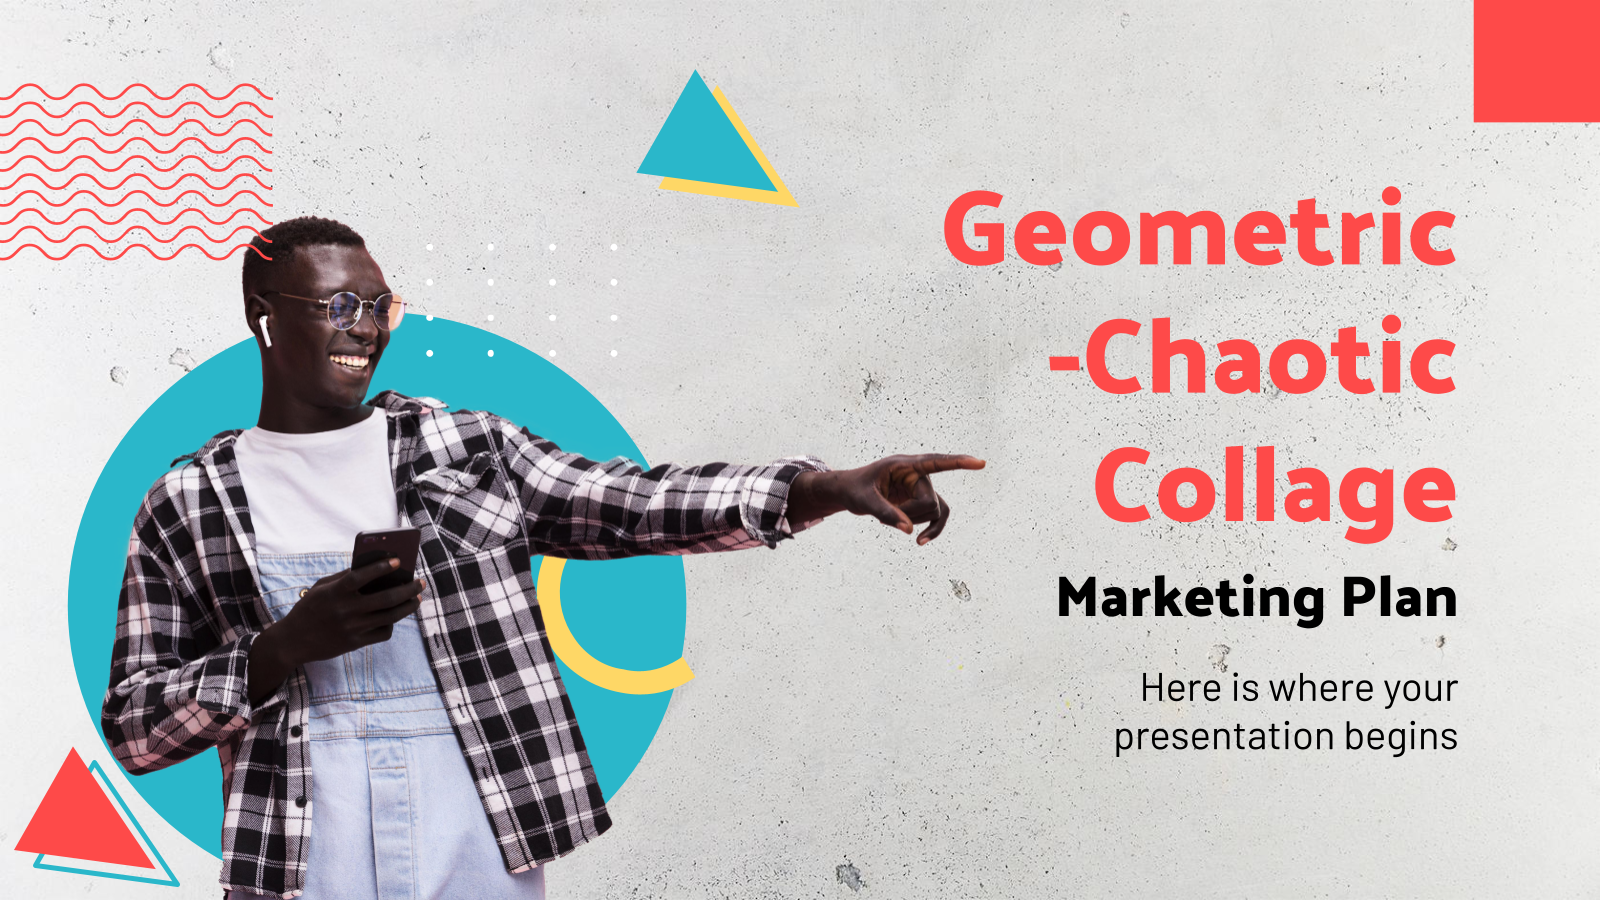 Geometric-Chaotic Collage Marketing presentation template